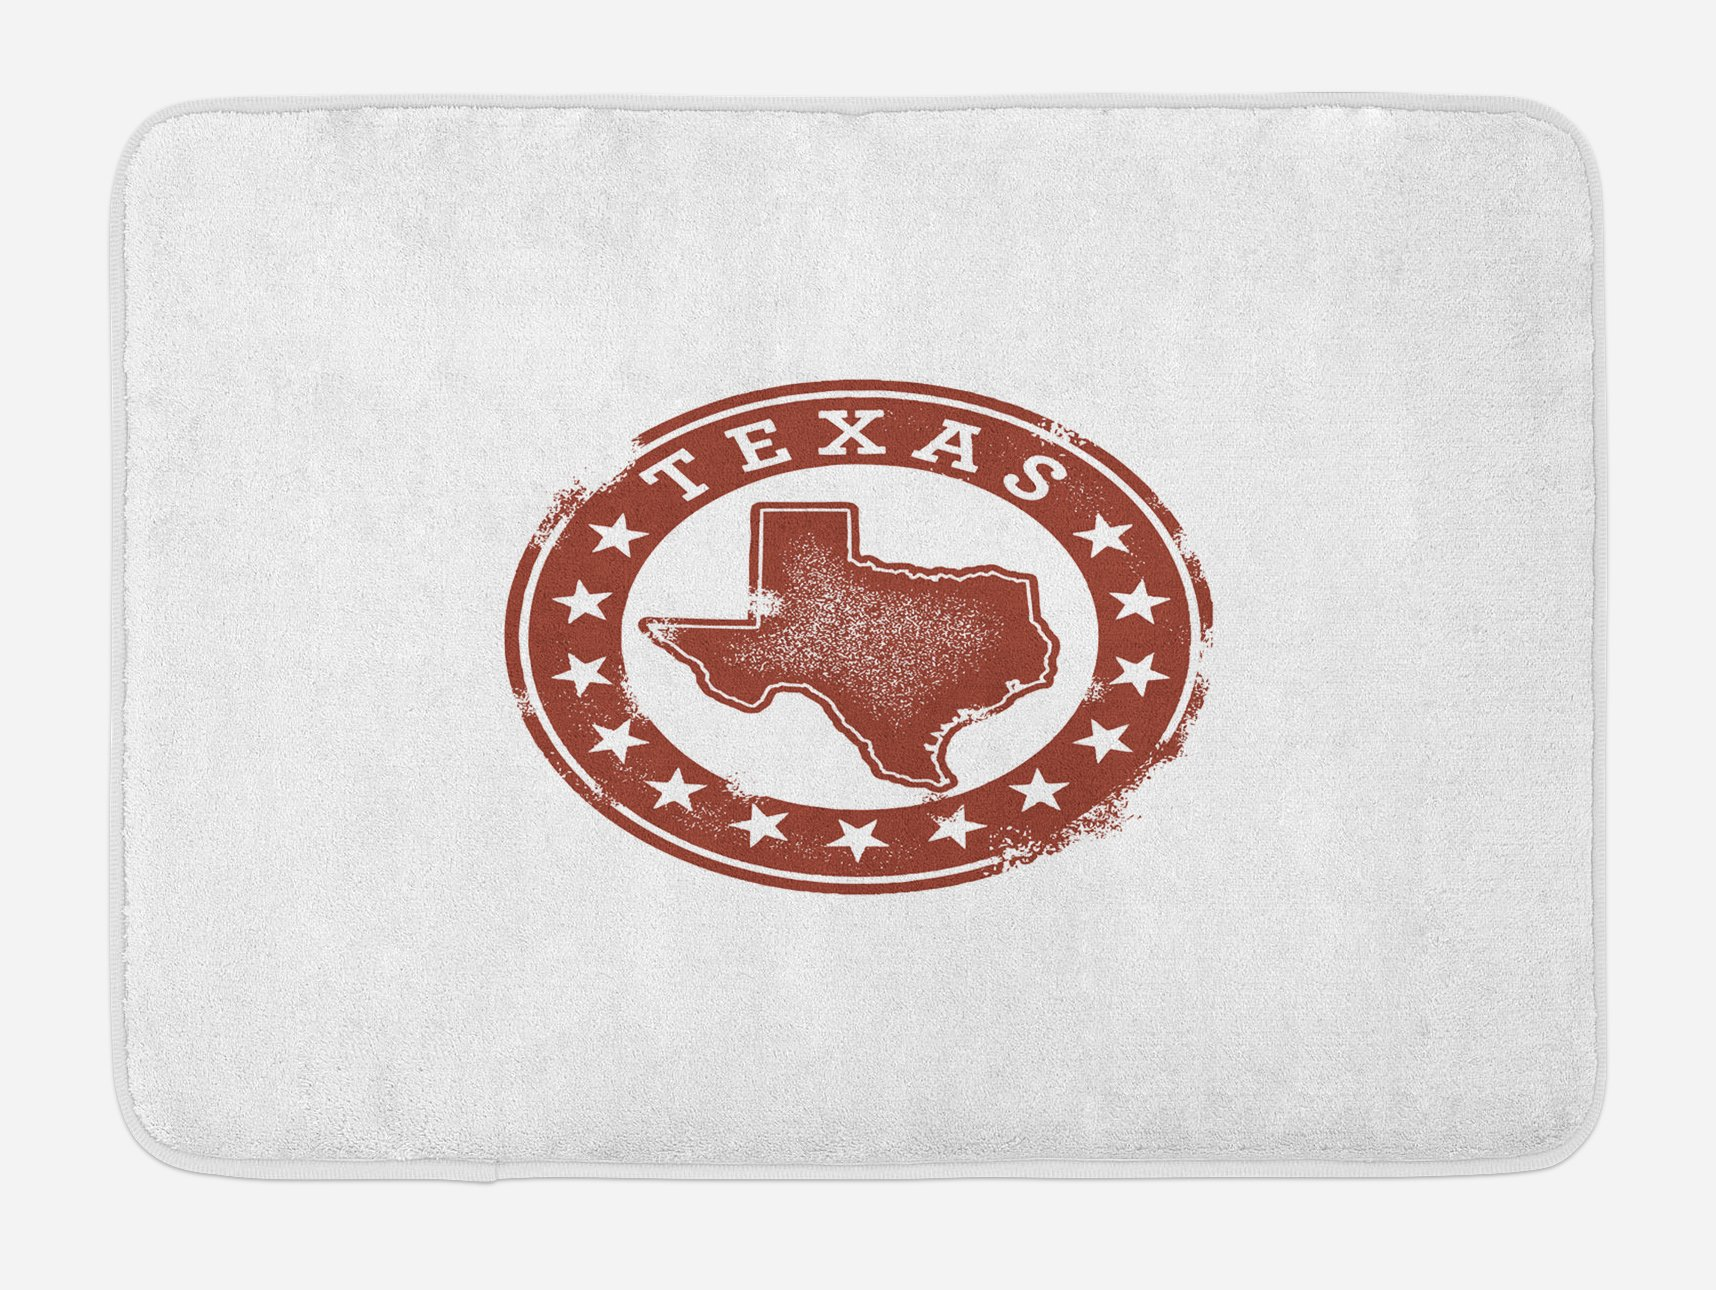 Lunarable Texas Bath Mat, Classical Rubber Stamp of Western Cowboy Country State Map Stars Dallas Houston, Plush Bathroom Decor Mat with Non Slip Backing, 29.5 W X 17.5 W Inches, Cinnamon White